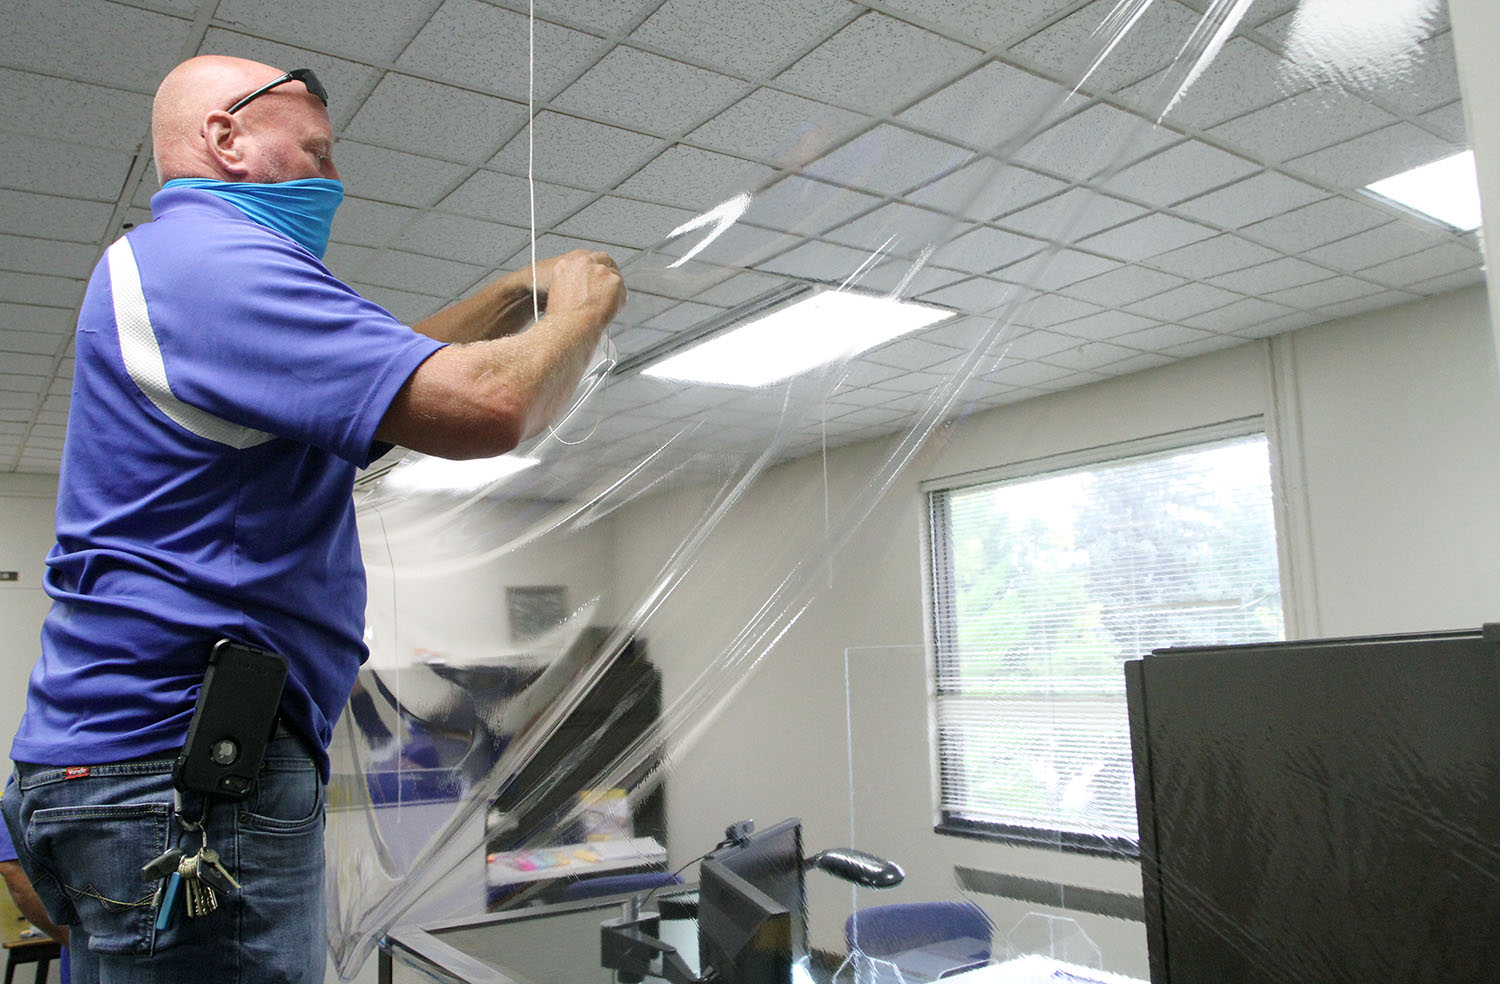 Dan Hill, building services supervisor with UNK Facilities Management and Planning, hangs a plastic barrier around a work station inside Warner Hall. Facilities Management is installing clear, plastic barriers in high-traffic areas and spaces where there's regular interaction between people.